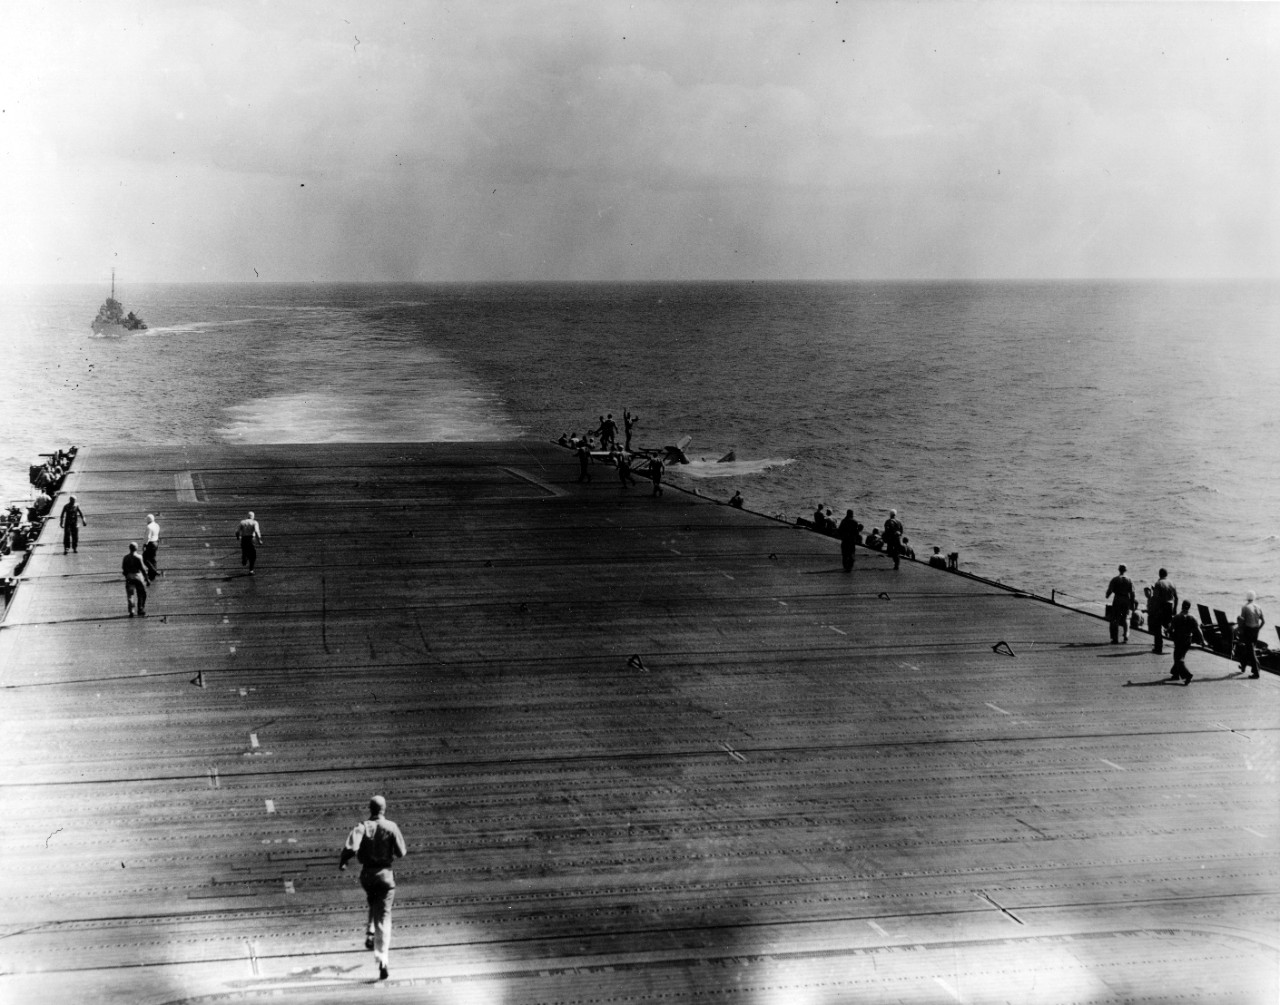 Lt. Cmdr. Eugene E. Lindsey's Douglas TBD-1 Devastator (BuNo. 0370) sinks astern of Enterprise after a deck landing accident, 28 May 1942. Monaghan steams as the plane guard destroyer in the left background, and rescues Lindsey and his crew. Enterprise is en route to the Battle of Midway, and Lindsey is the commanding officer of VT-6, who flies out with the rest of the air group to join the ship when he crashes. (U.S. Navy Photograph 80-G-7744, National Archives and Records Administration, Still Pictures Branch, College Park, Md.)